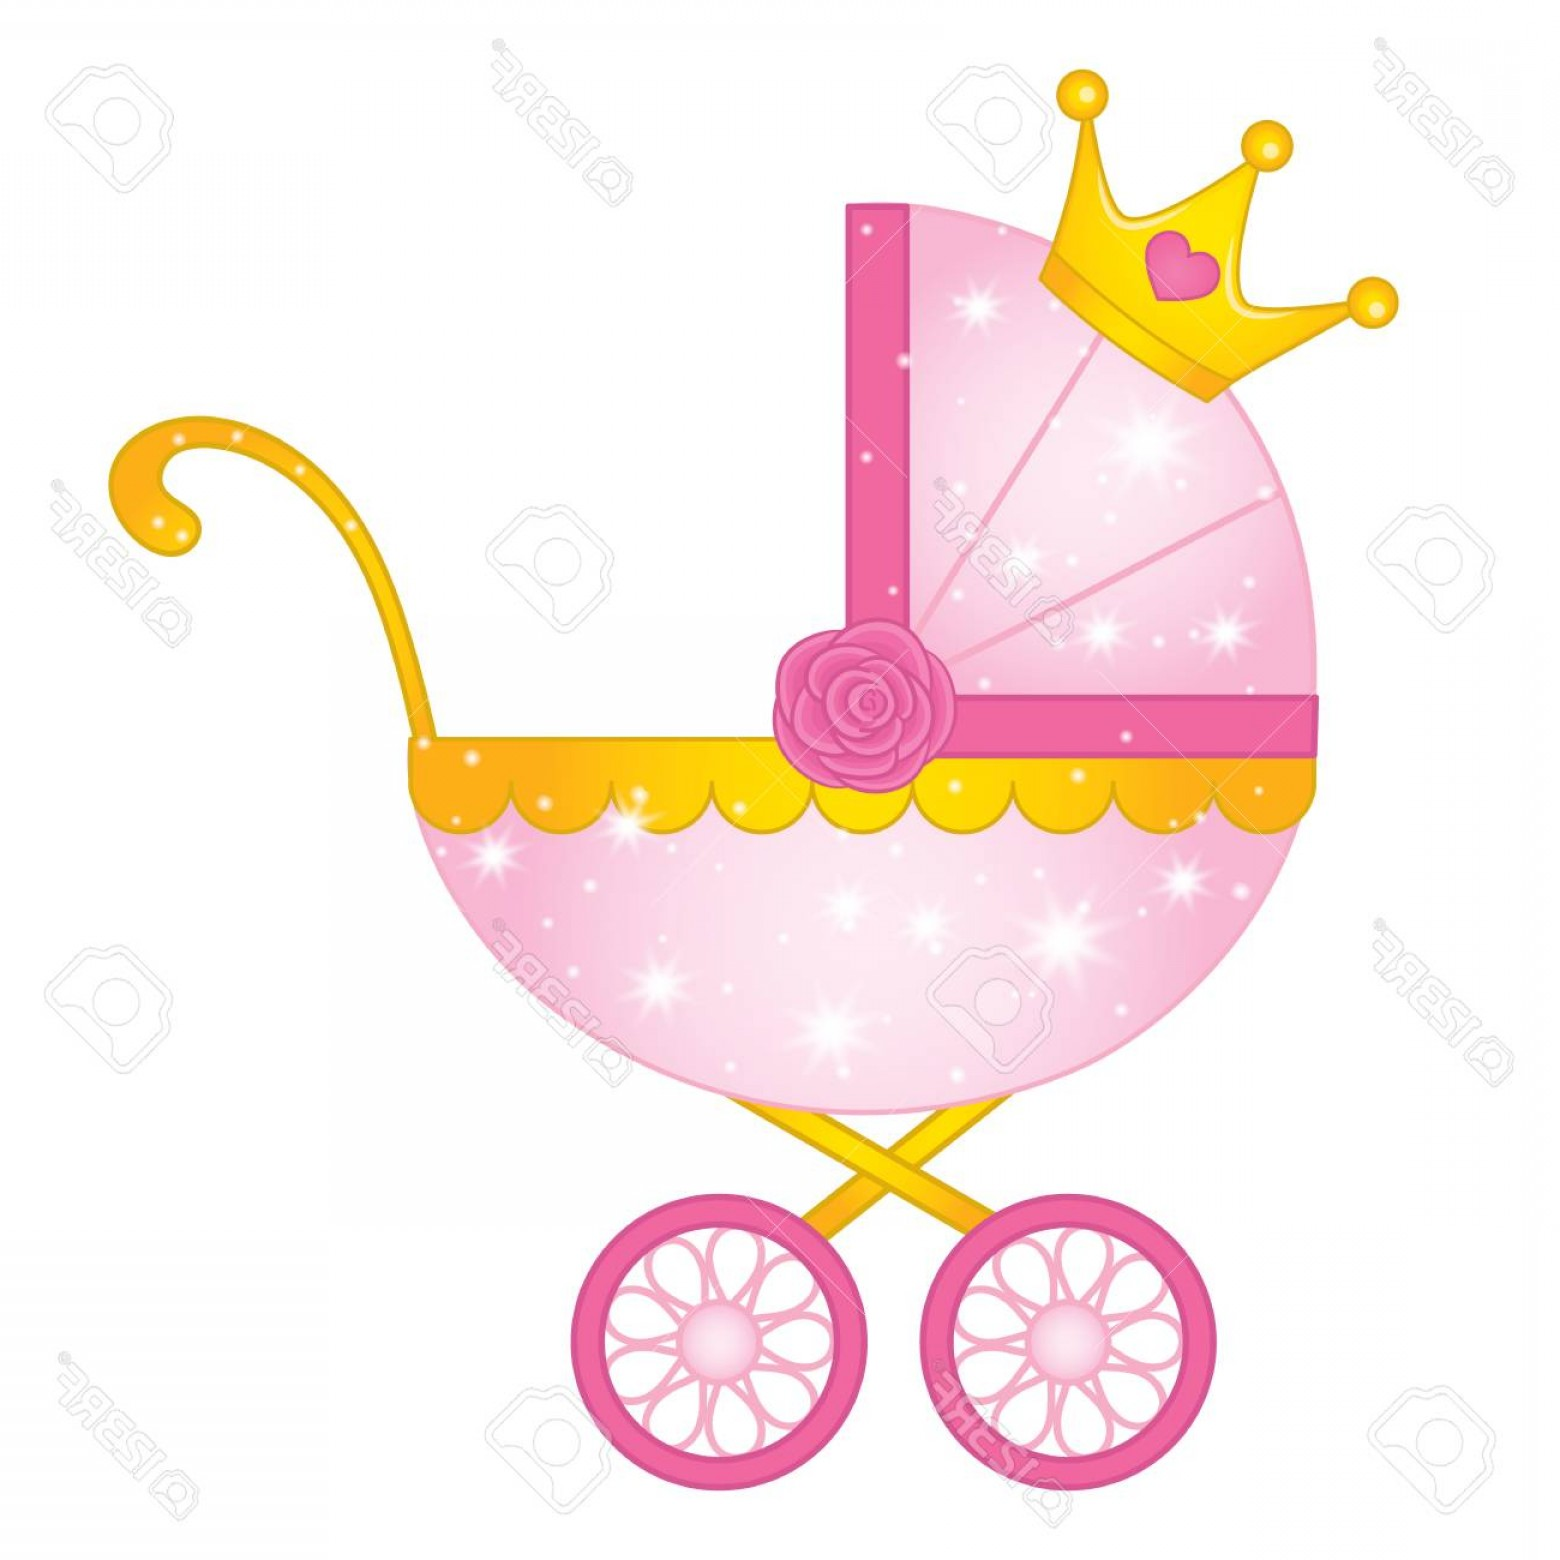 Princess Baby Girl Vector: Photostock Vector Vector Stroller For Princess Baby Girl Vector Pink And Yellow Stroller Decorated With Crown